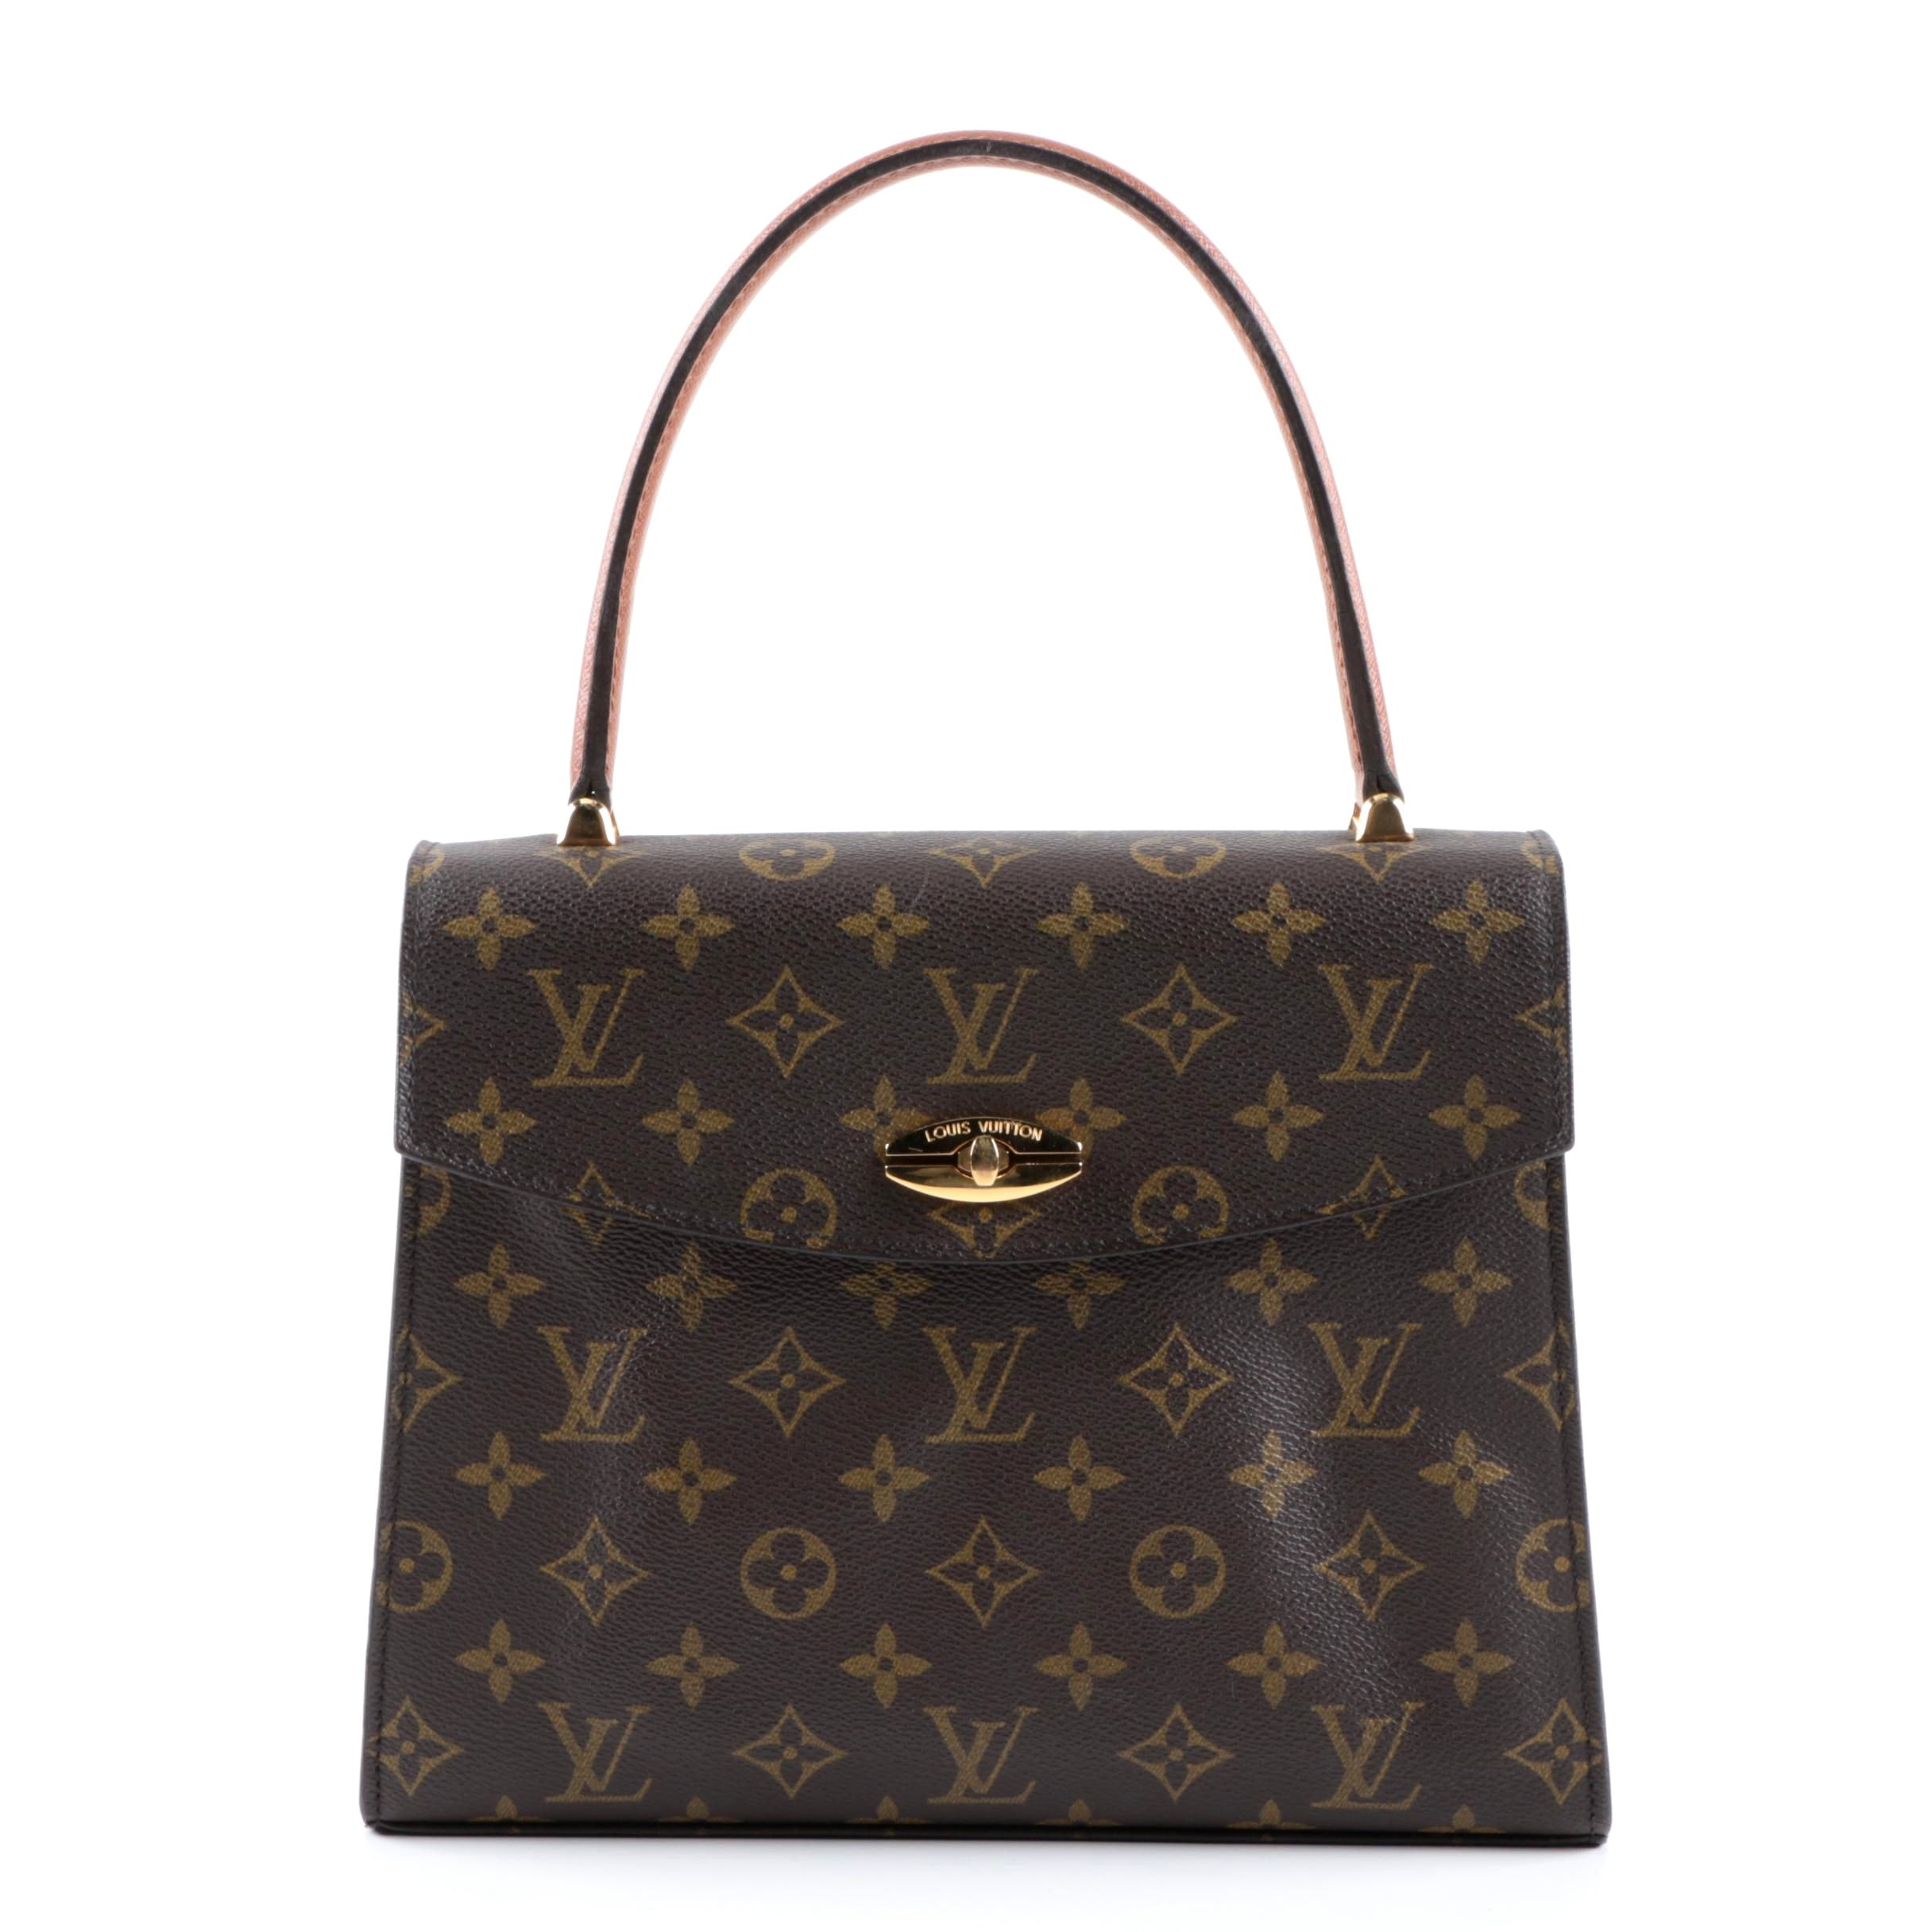 VIntage Louis Vuitton Malesherbes Monogram Canvas Satchel